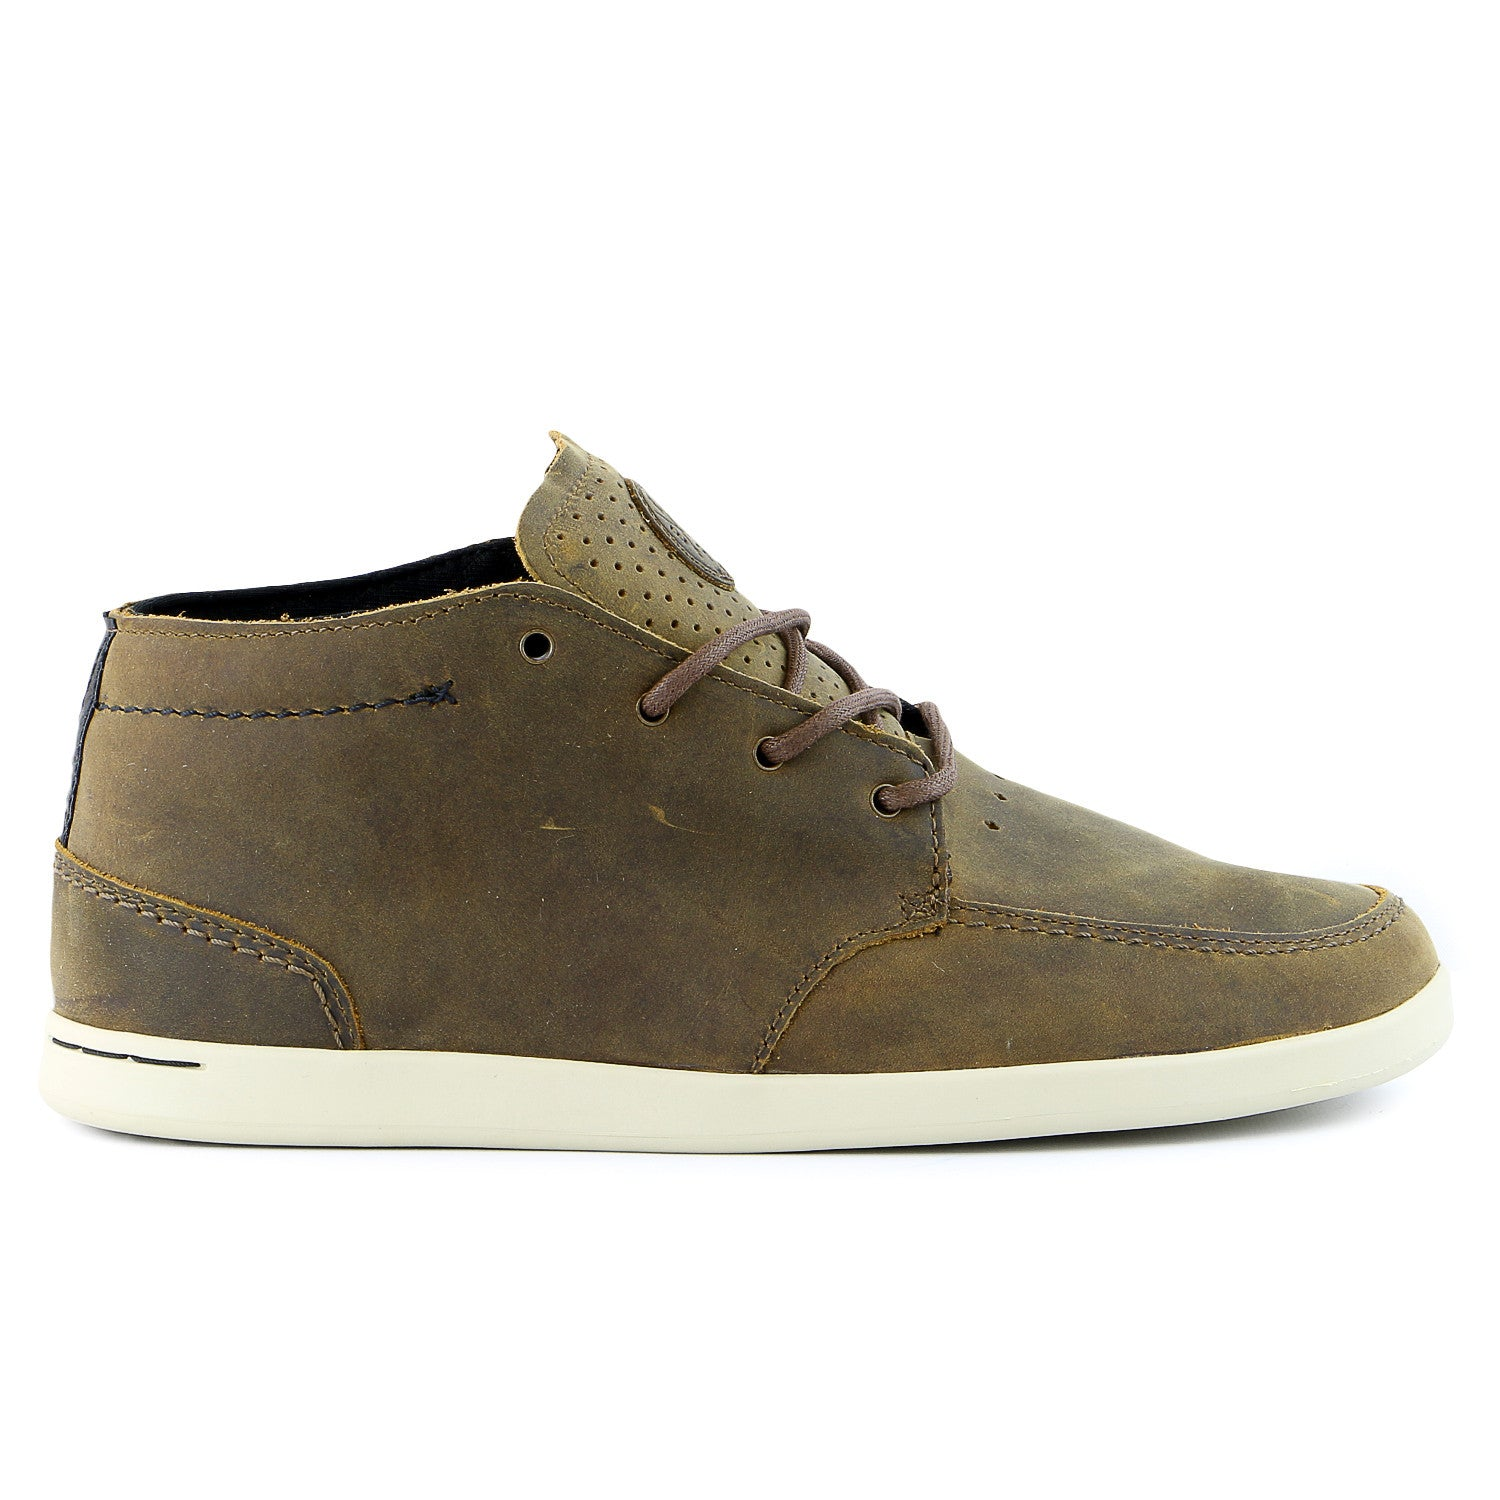 Reef Spiniker Fashion Boots in Mid Nb Brown